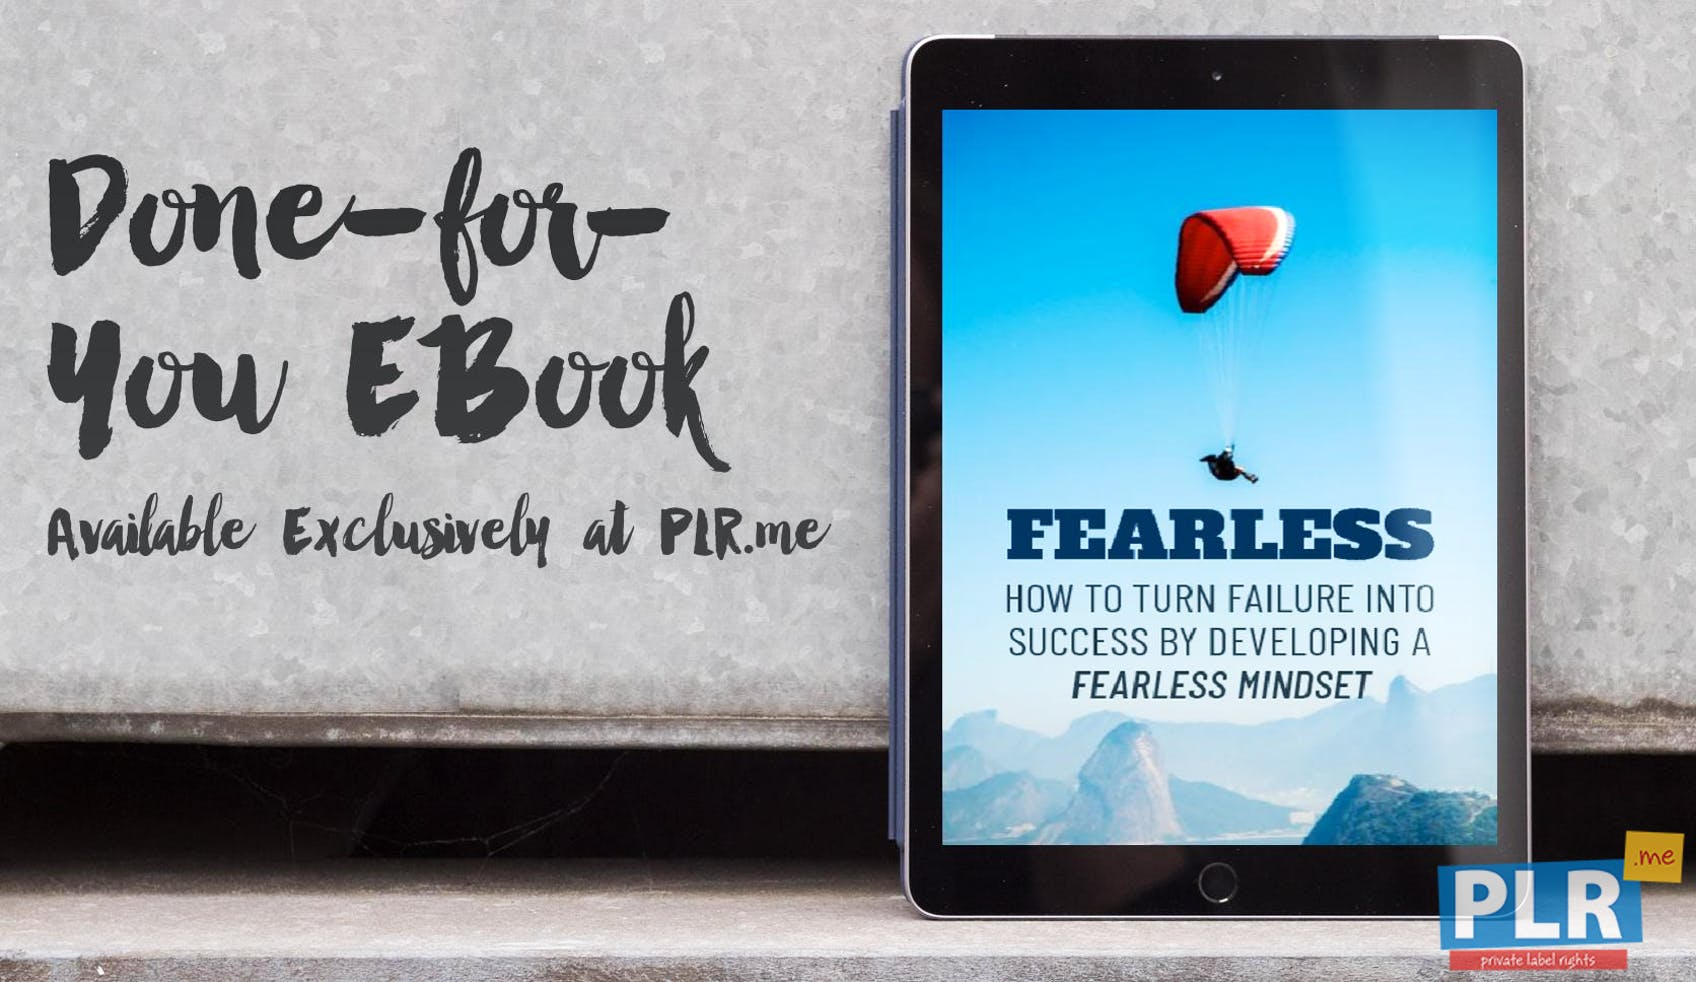 Fearless How To Turn Failure Into Success